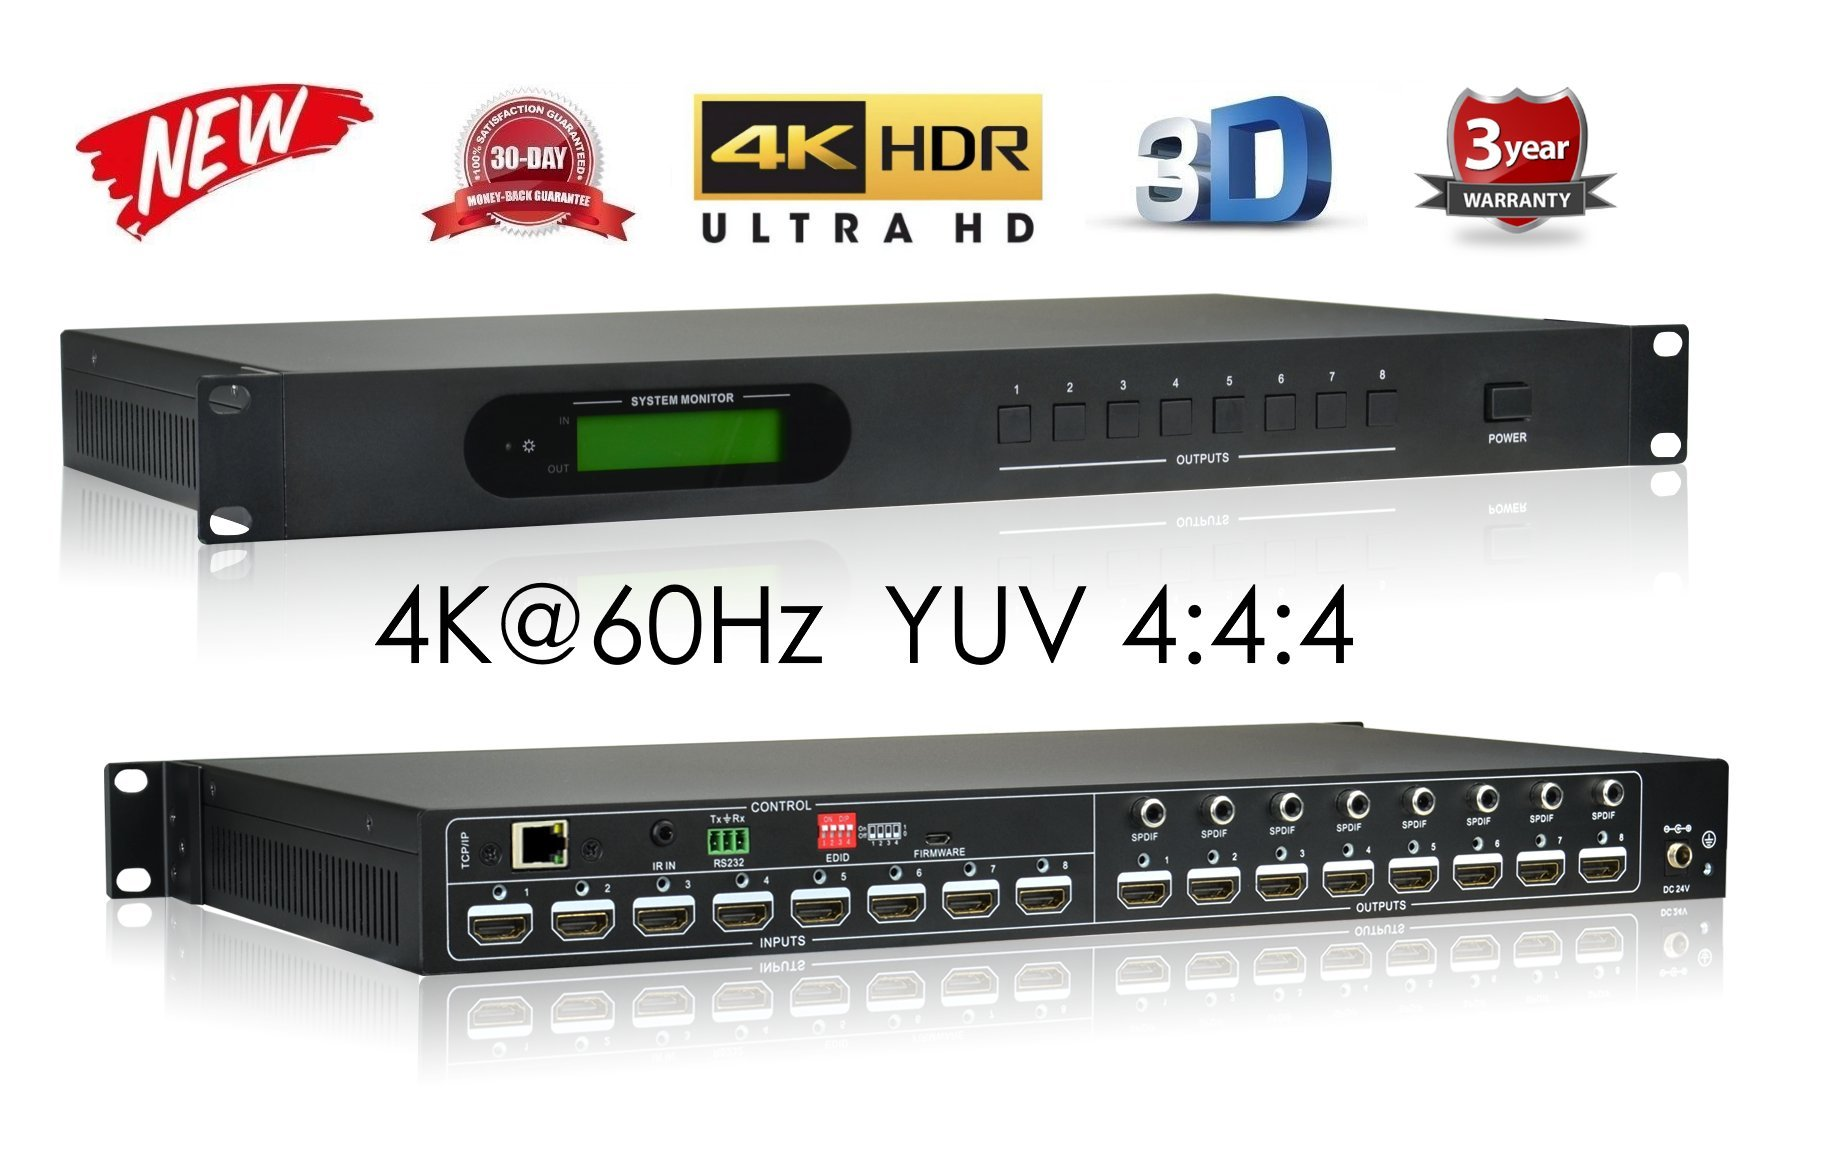 8x8 HDMI 2.0B 18GBPS ULTRA HDR 4K MATRIX SWITCHER YUV 4:4:4 HDCP2.2 HDTV ROUTING SELECTOR SPDIF AUDIO CRESTRON CONTROL4 SAVANT HOME AUTOMATION